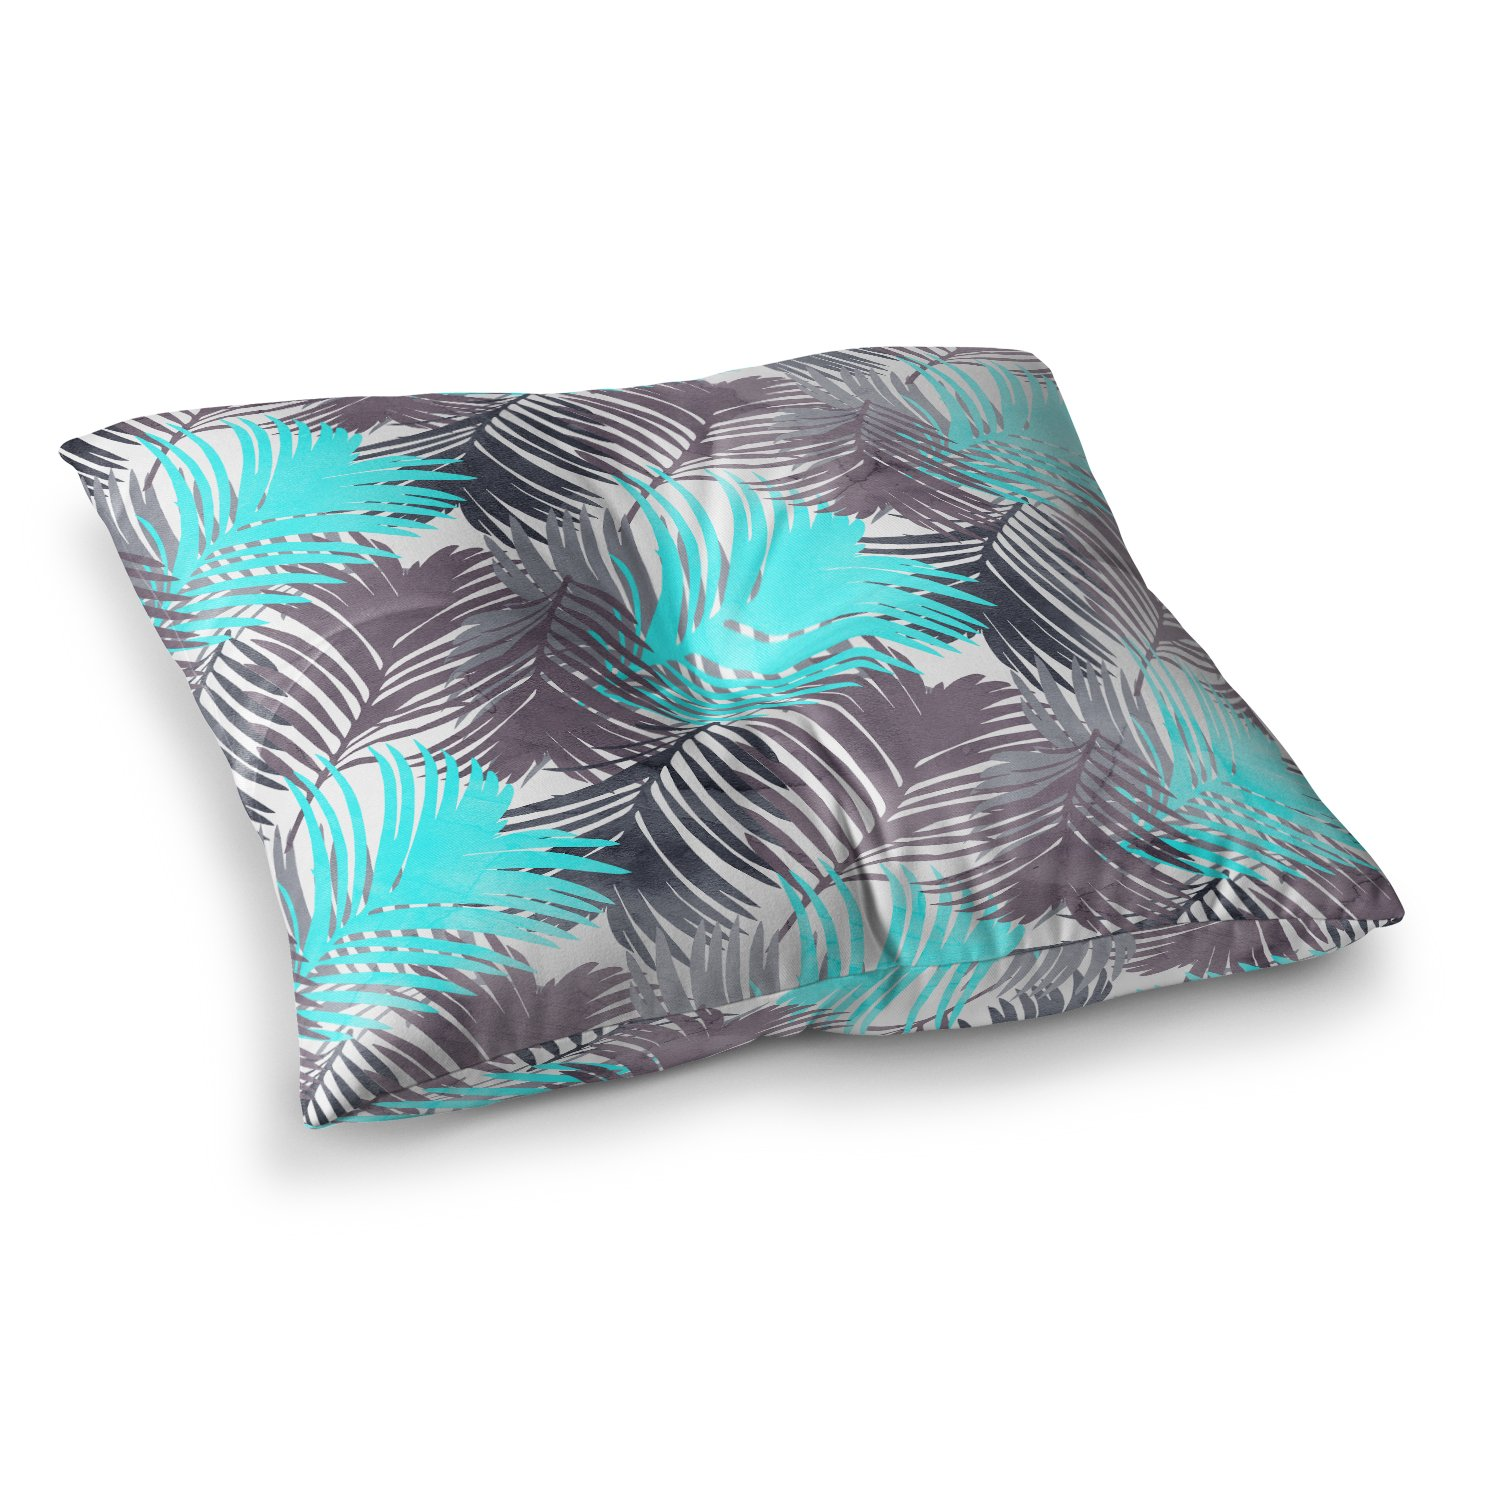 Kess InHouse Cafelab Jungle Pattern Blue Teal Mixed Media Square Floor Pillow 23' x 23' EC3021ASF01